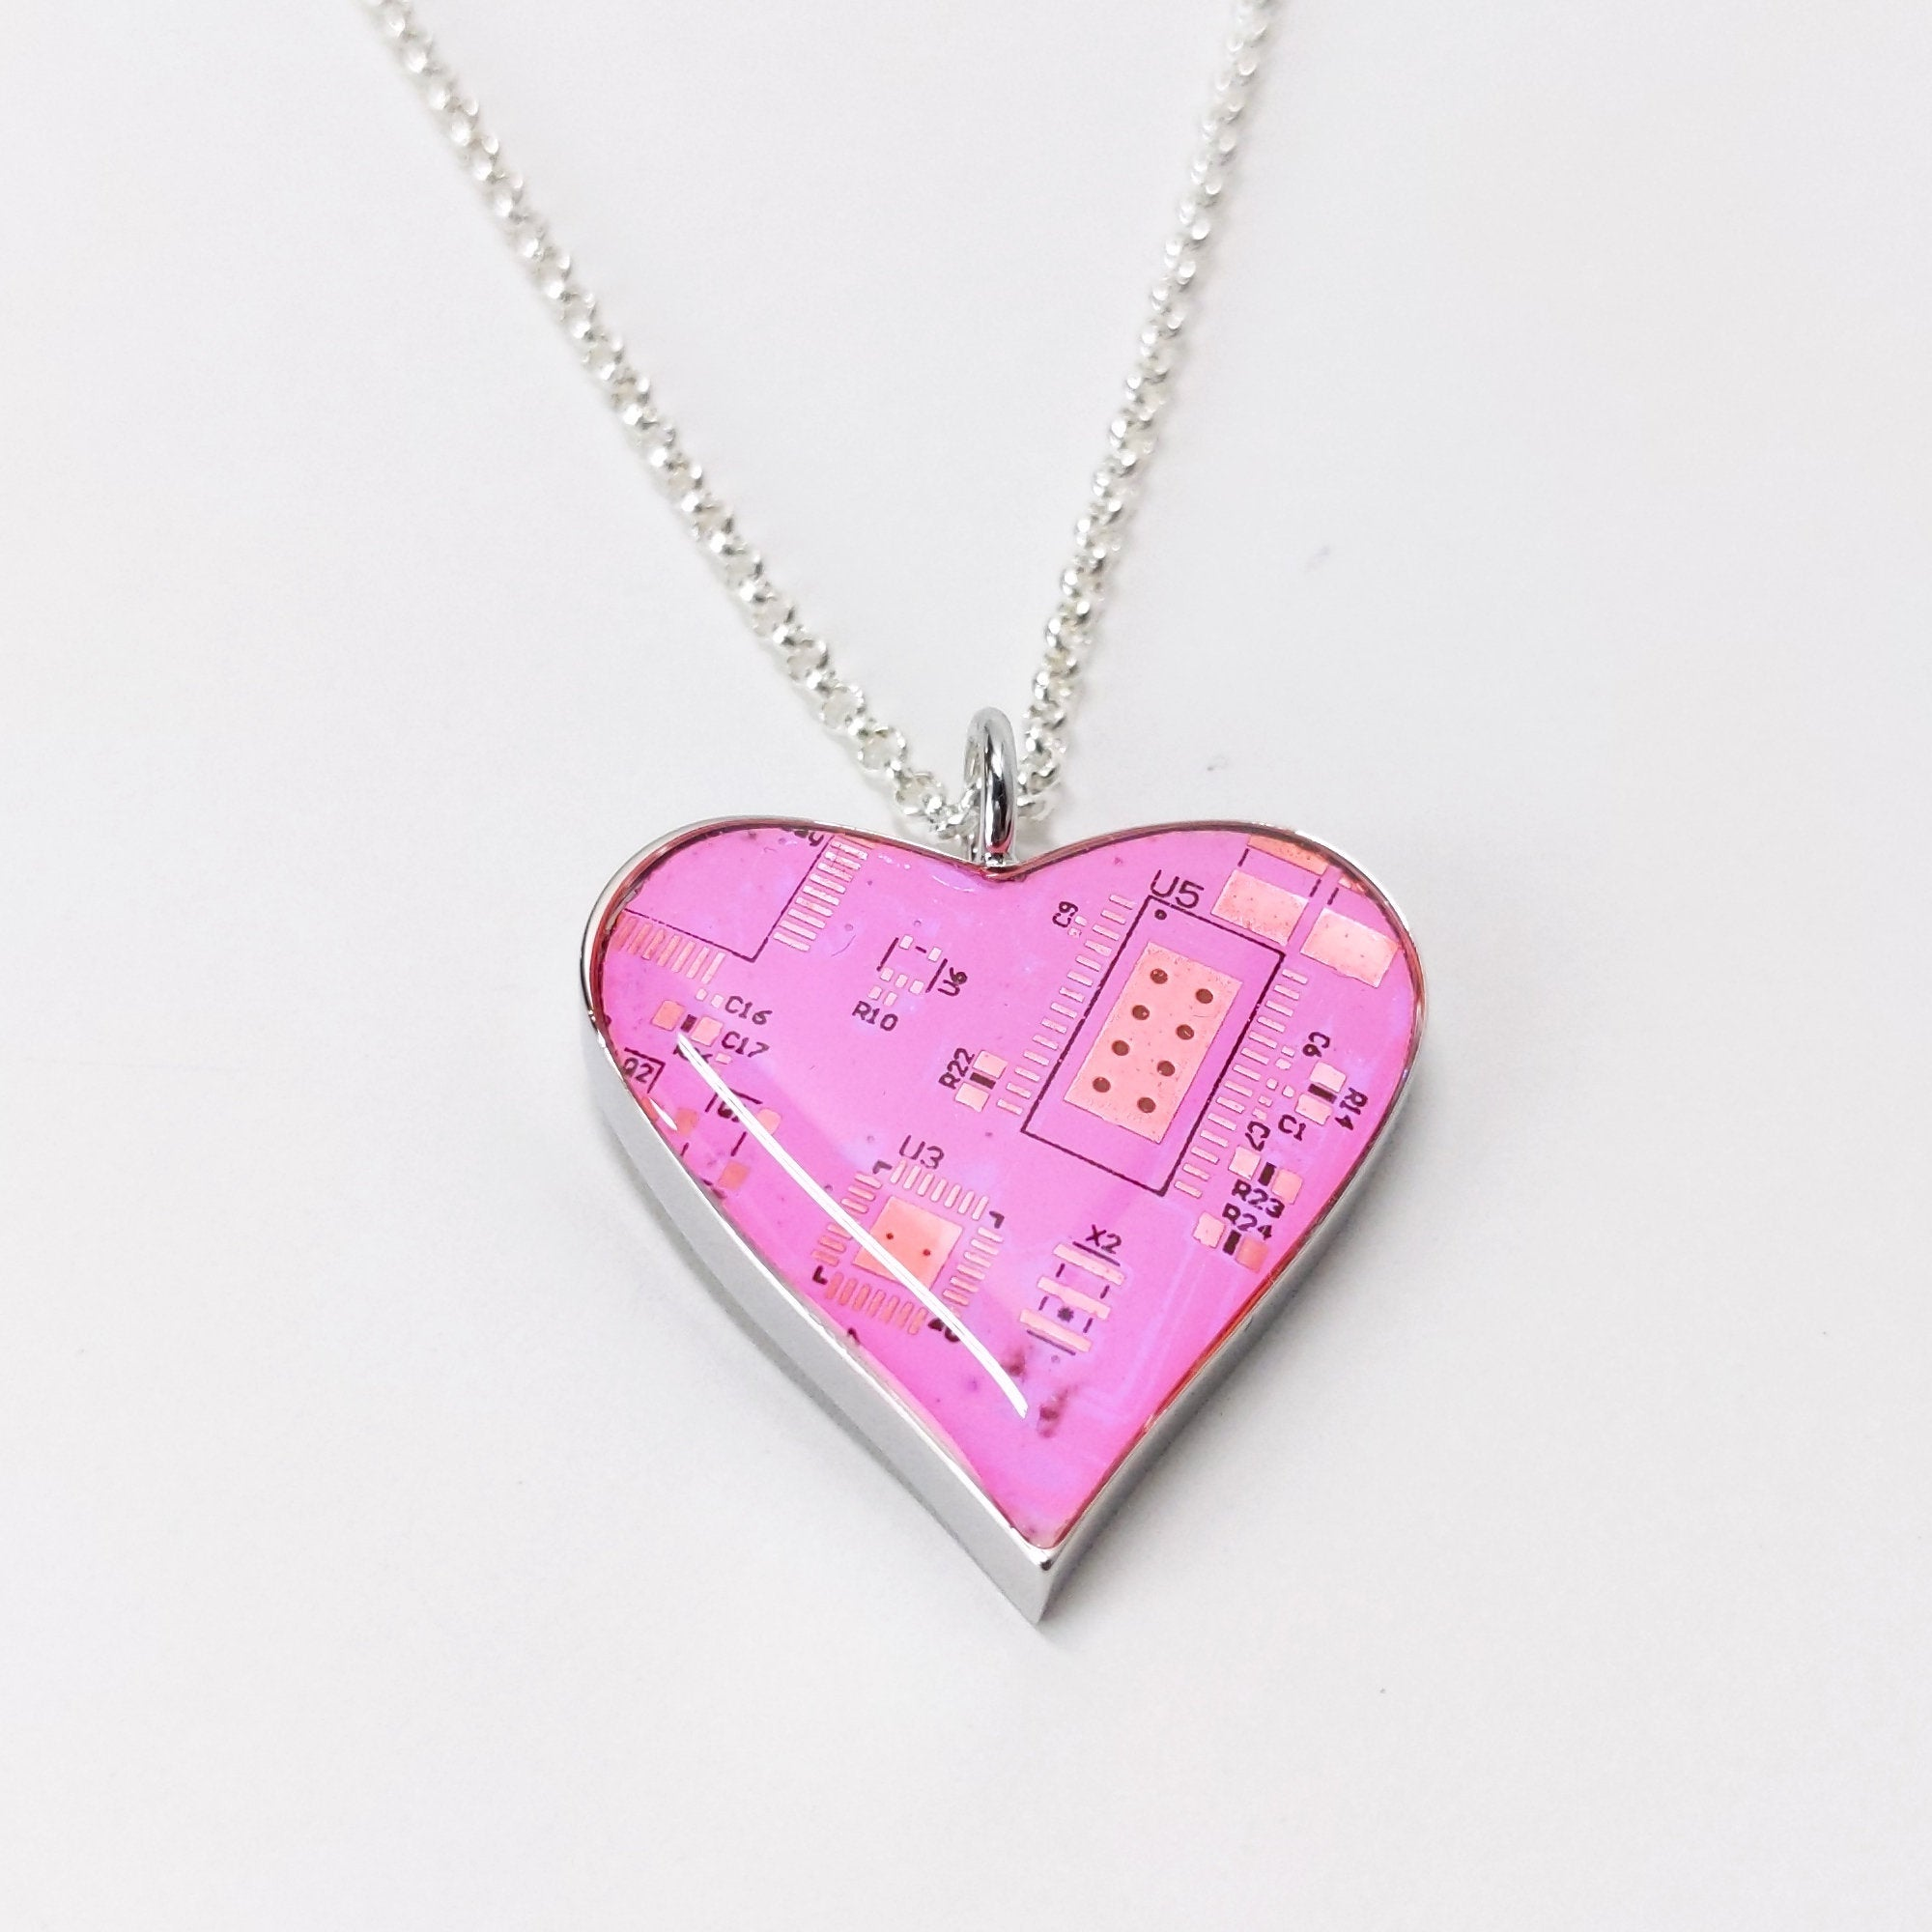 Circuit Board Pink Heart Pendant with Silver Chain - TechWears Ltd